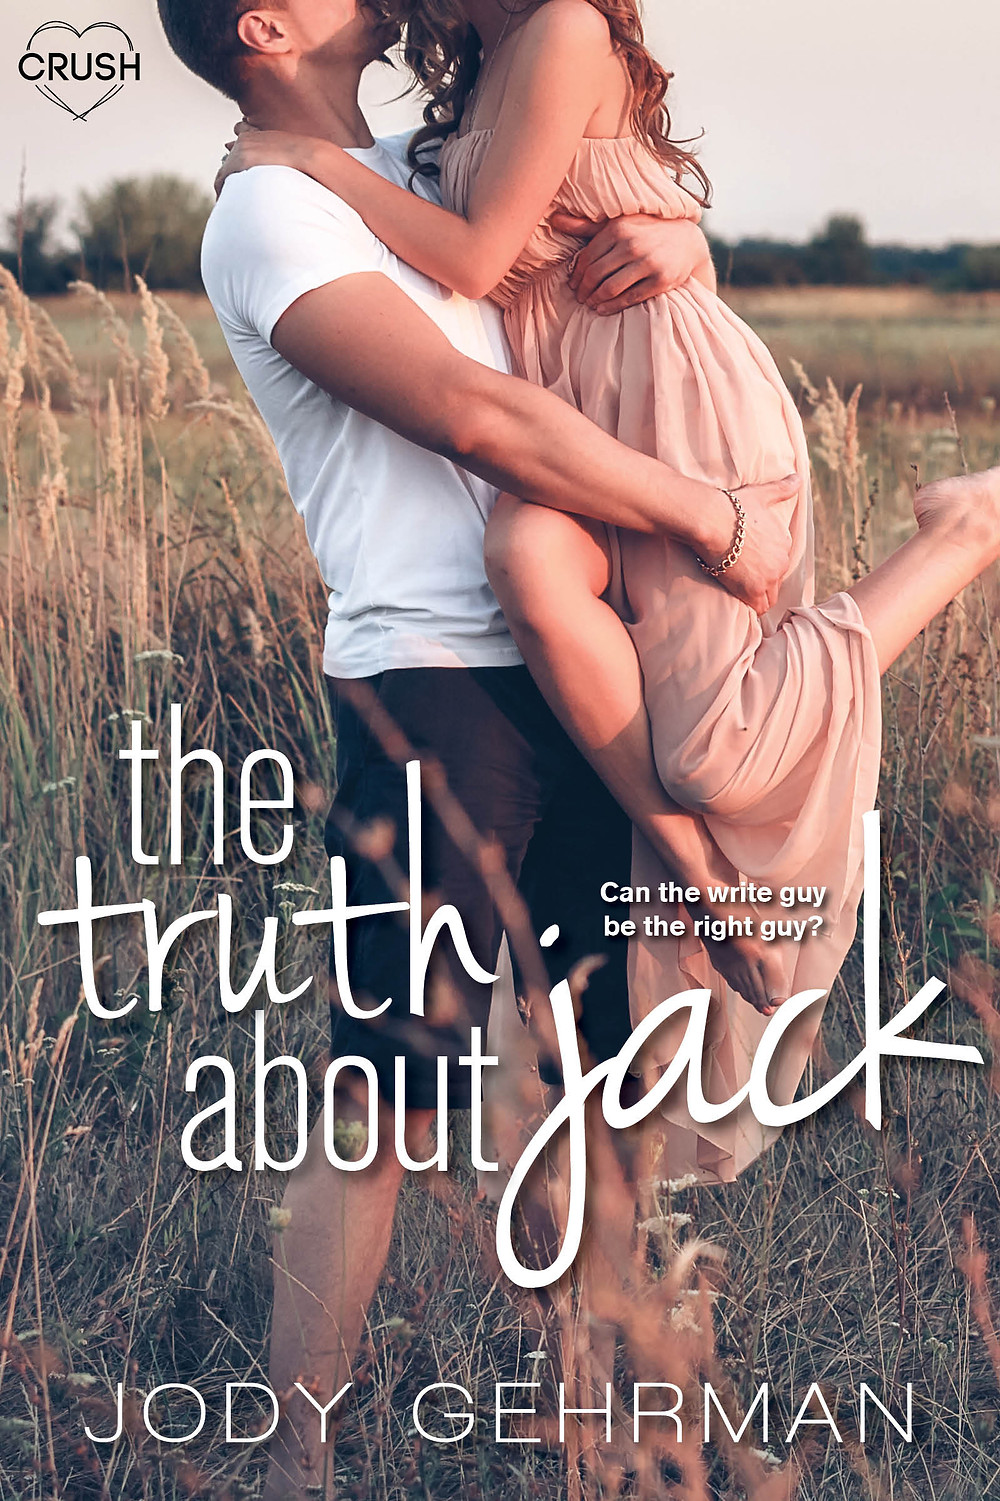 TheTruthAboutJack_cover4.jpg